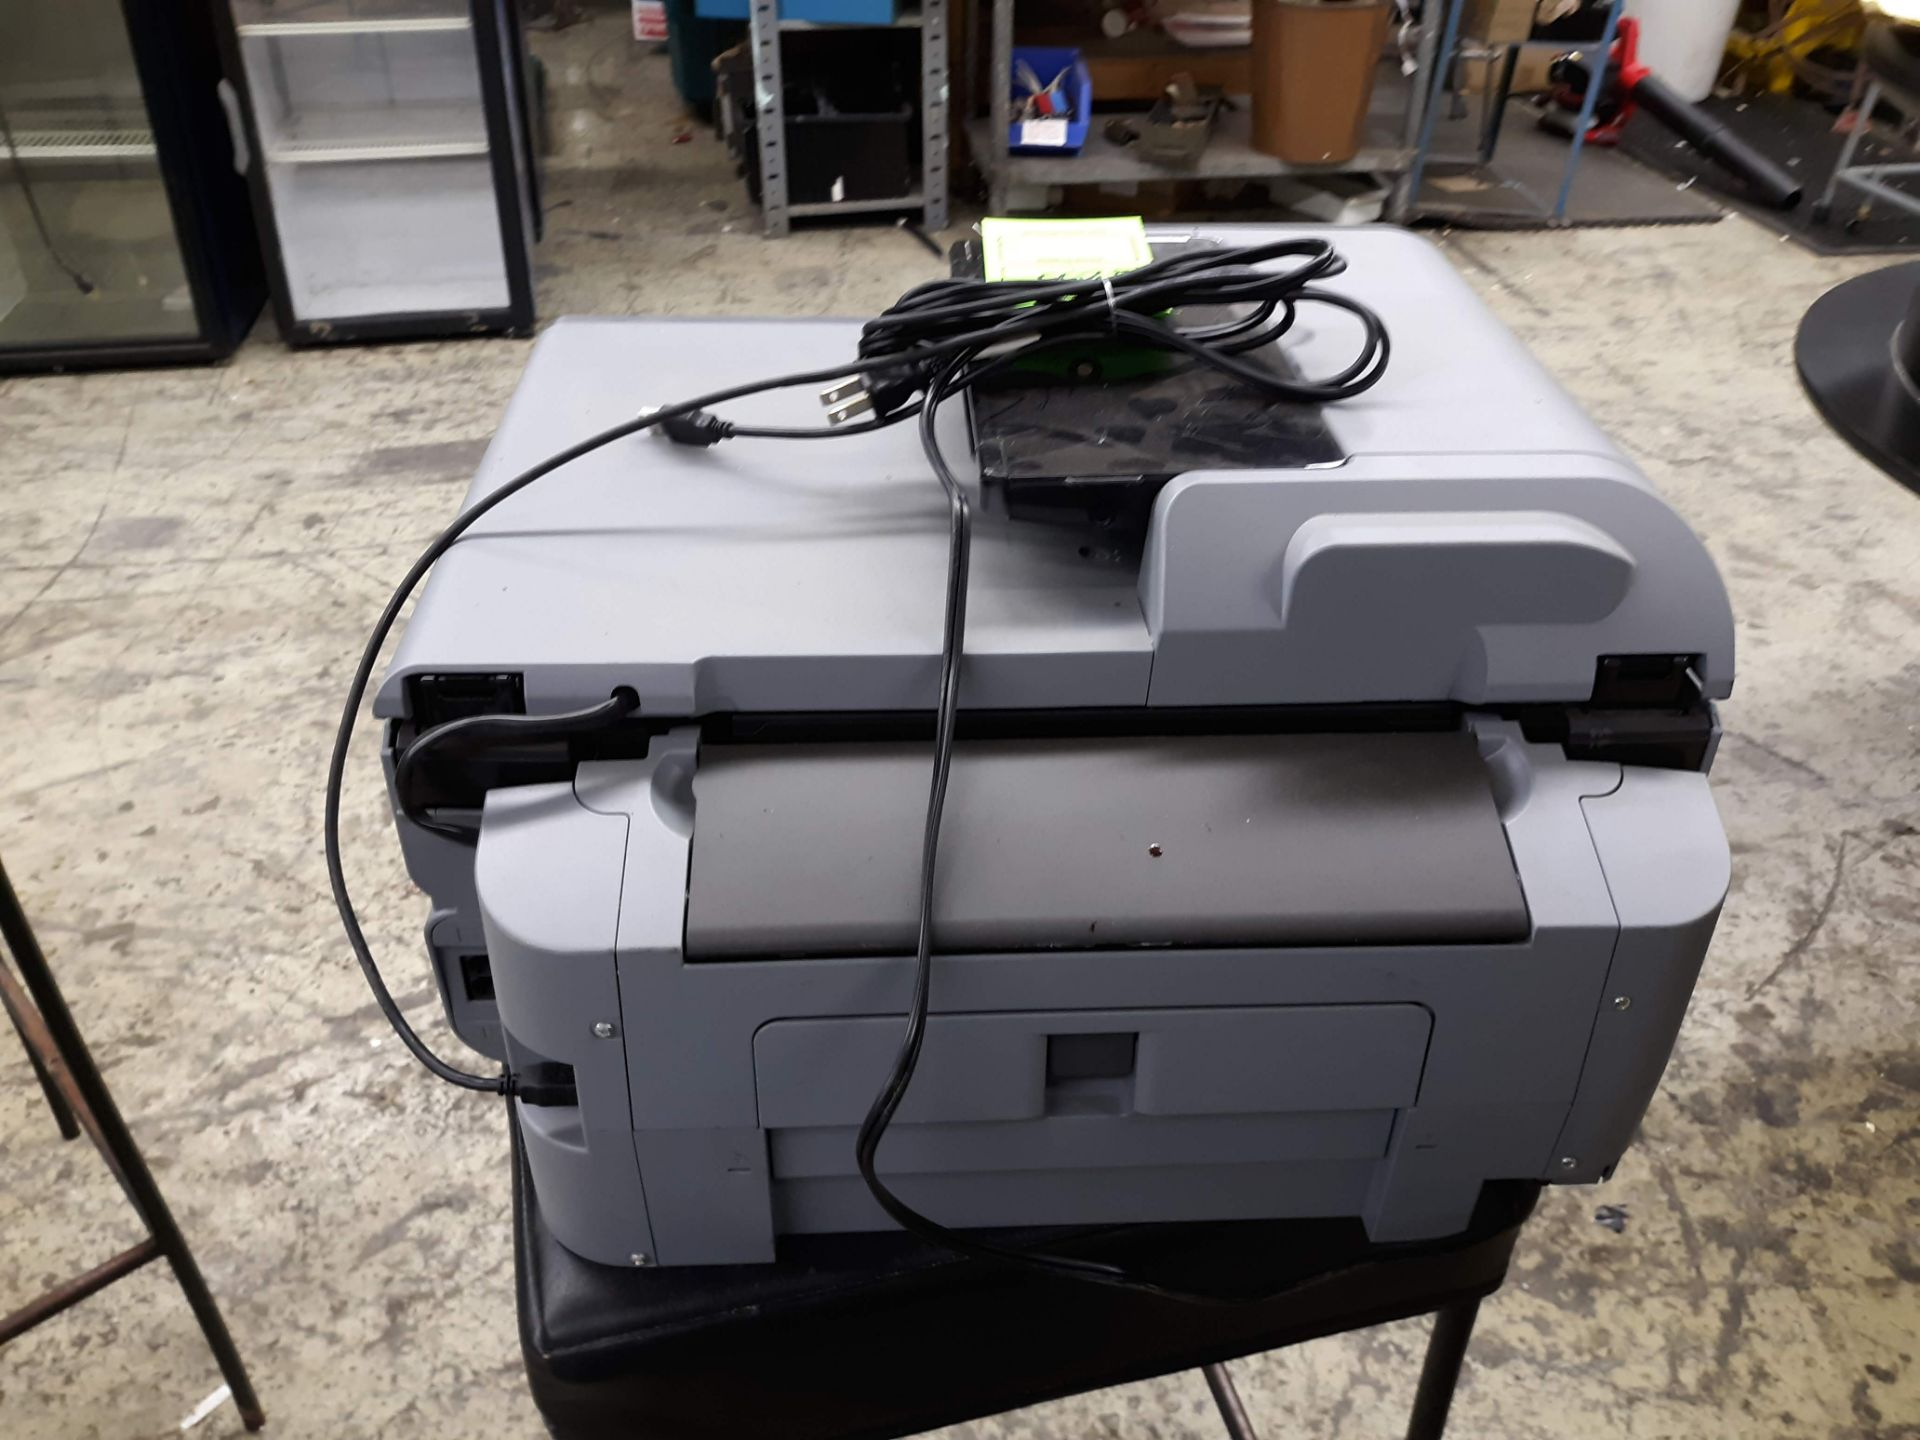 Lot 1255 - CANON MP530 ALL-IN-ONE PRINTER/FAX MACHINE (LOCATED AT: 433 COUNCIL DRIVE, FORT WAYNE, IN 46825)